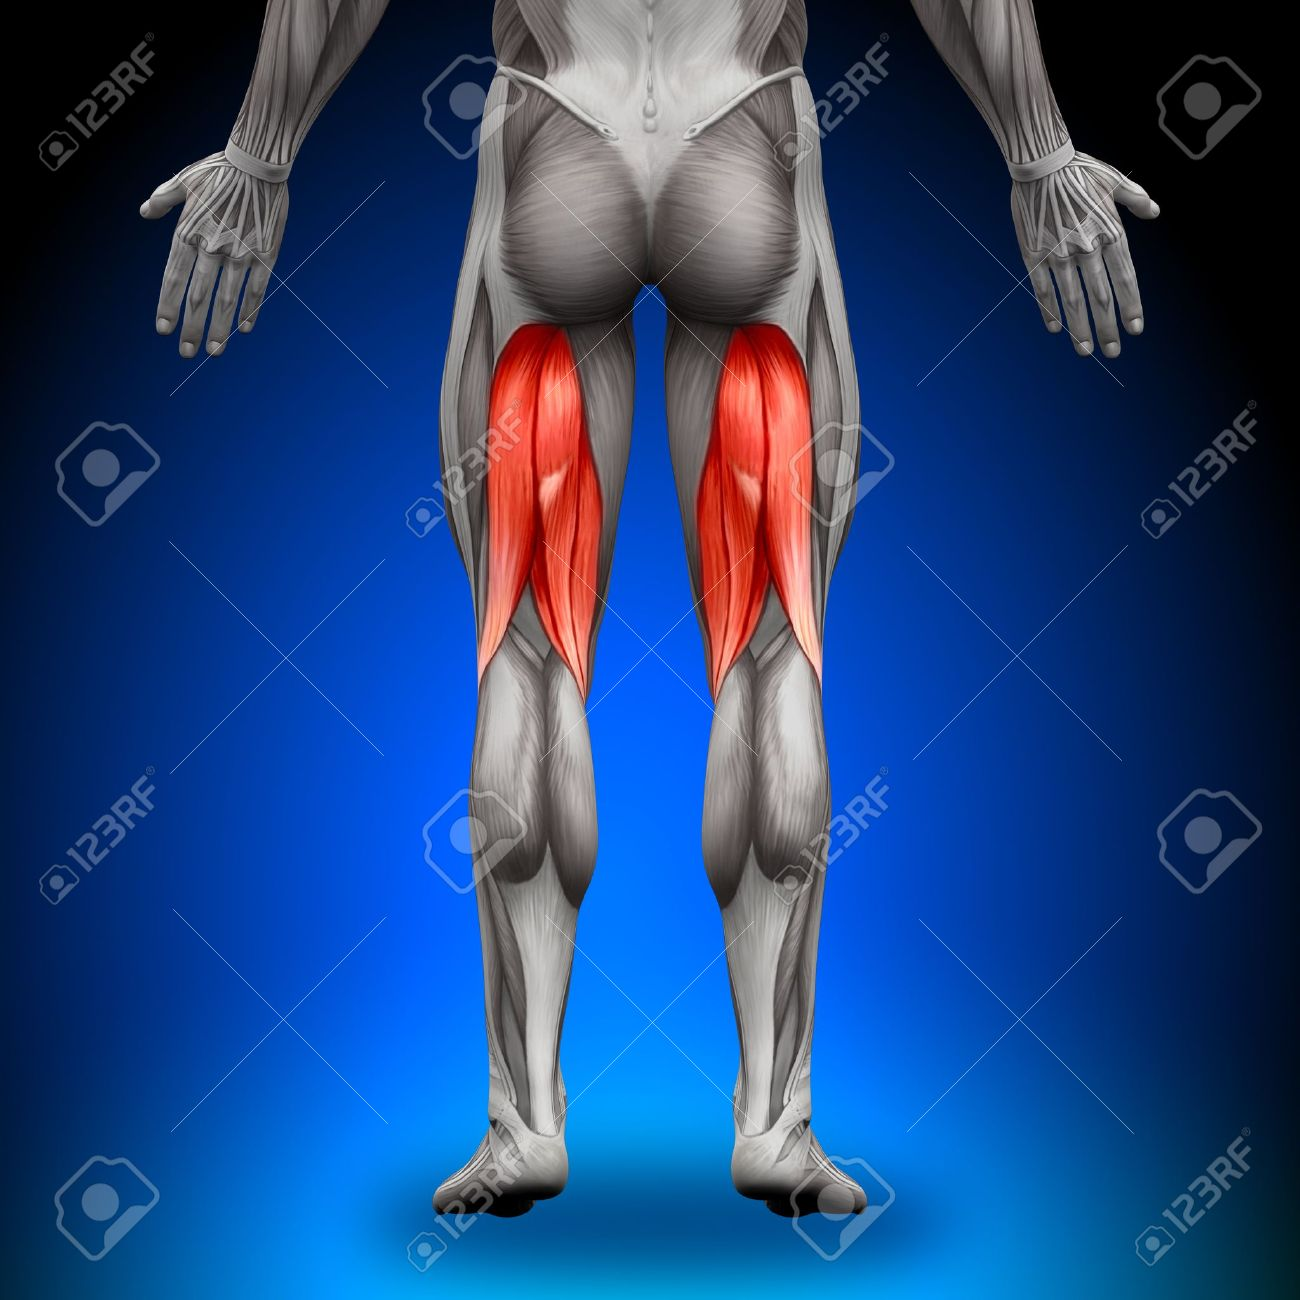 Hamstrings Anatomy Muscles Stock Photo, Picture And Royalty Free ...